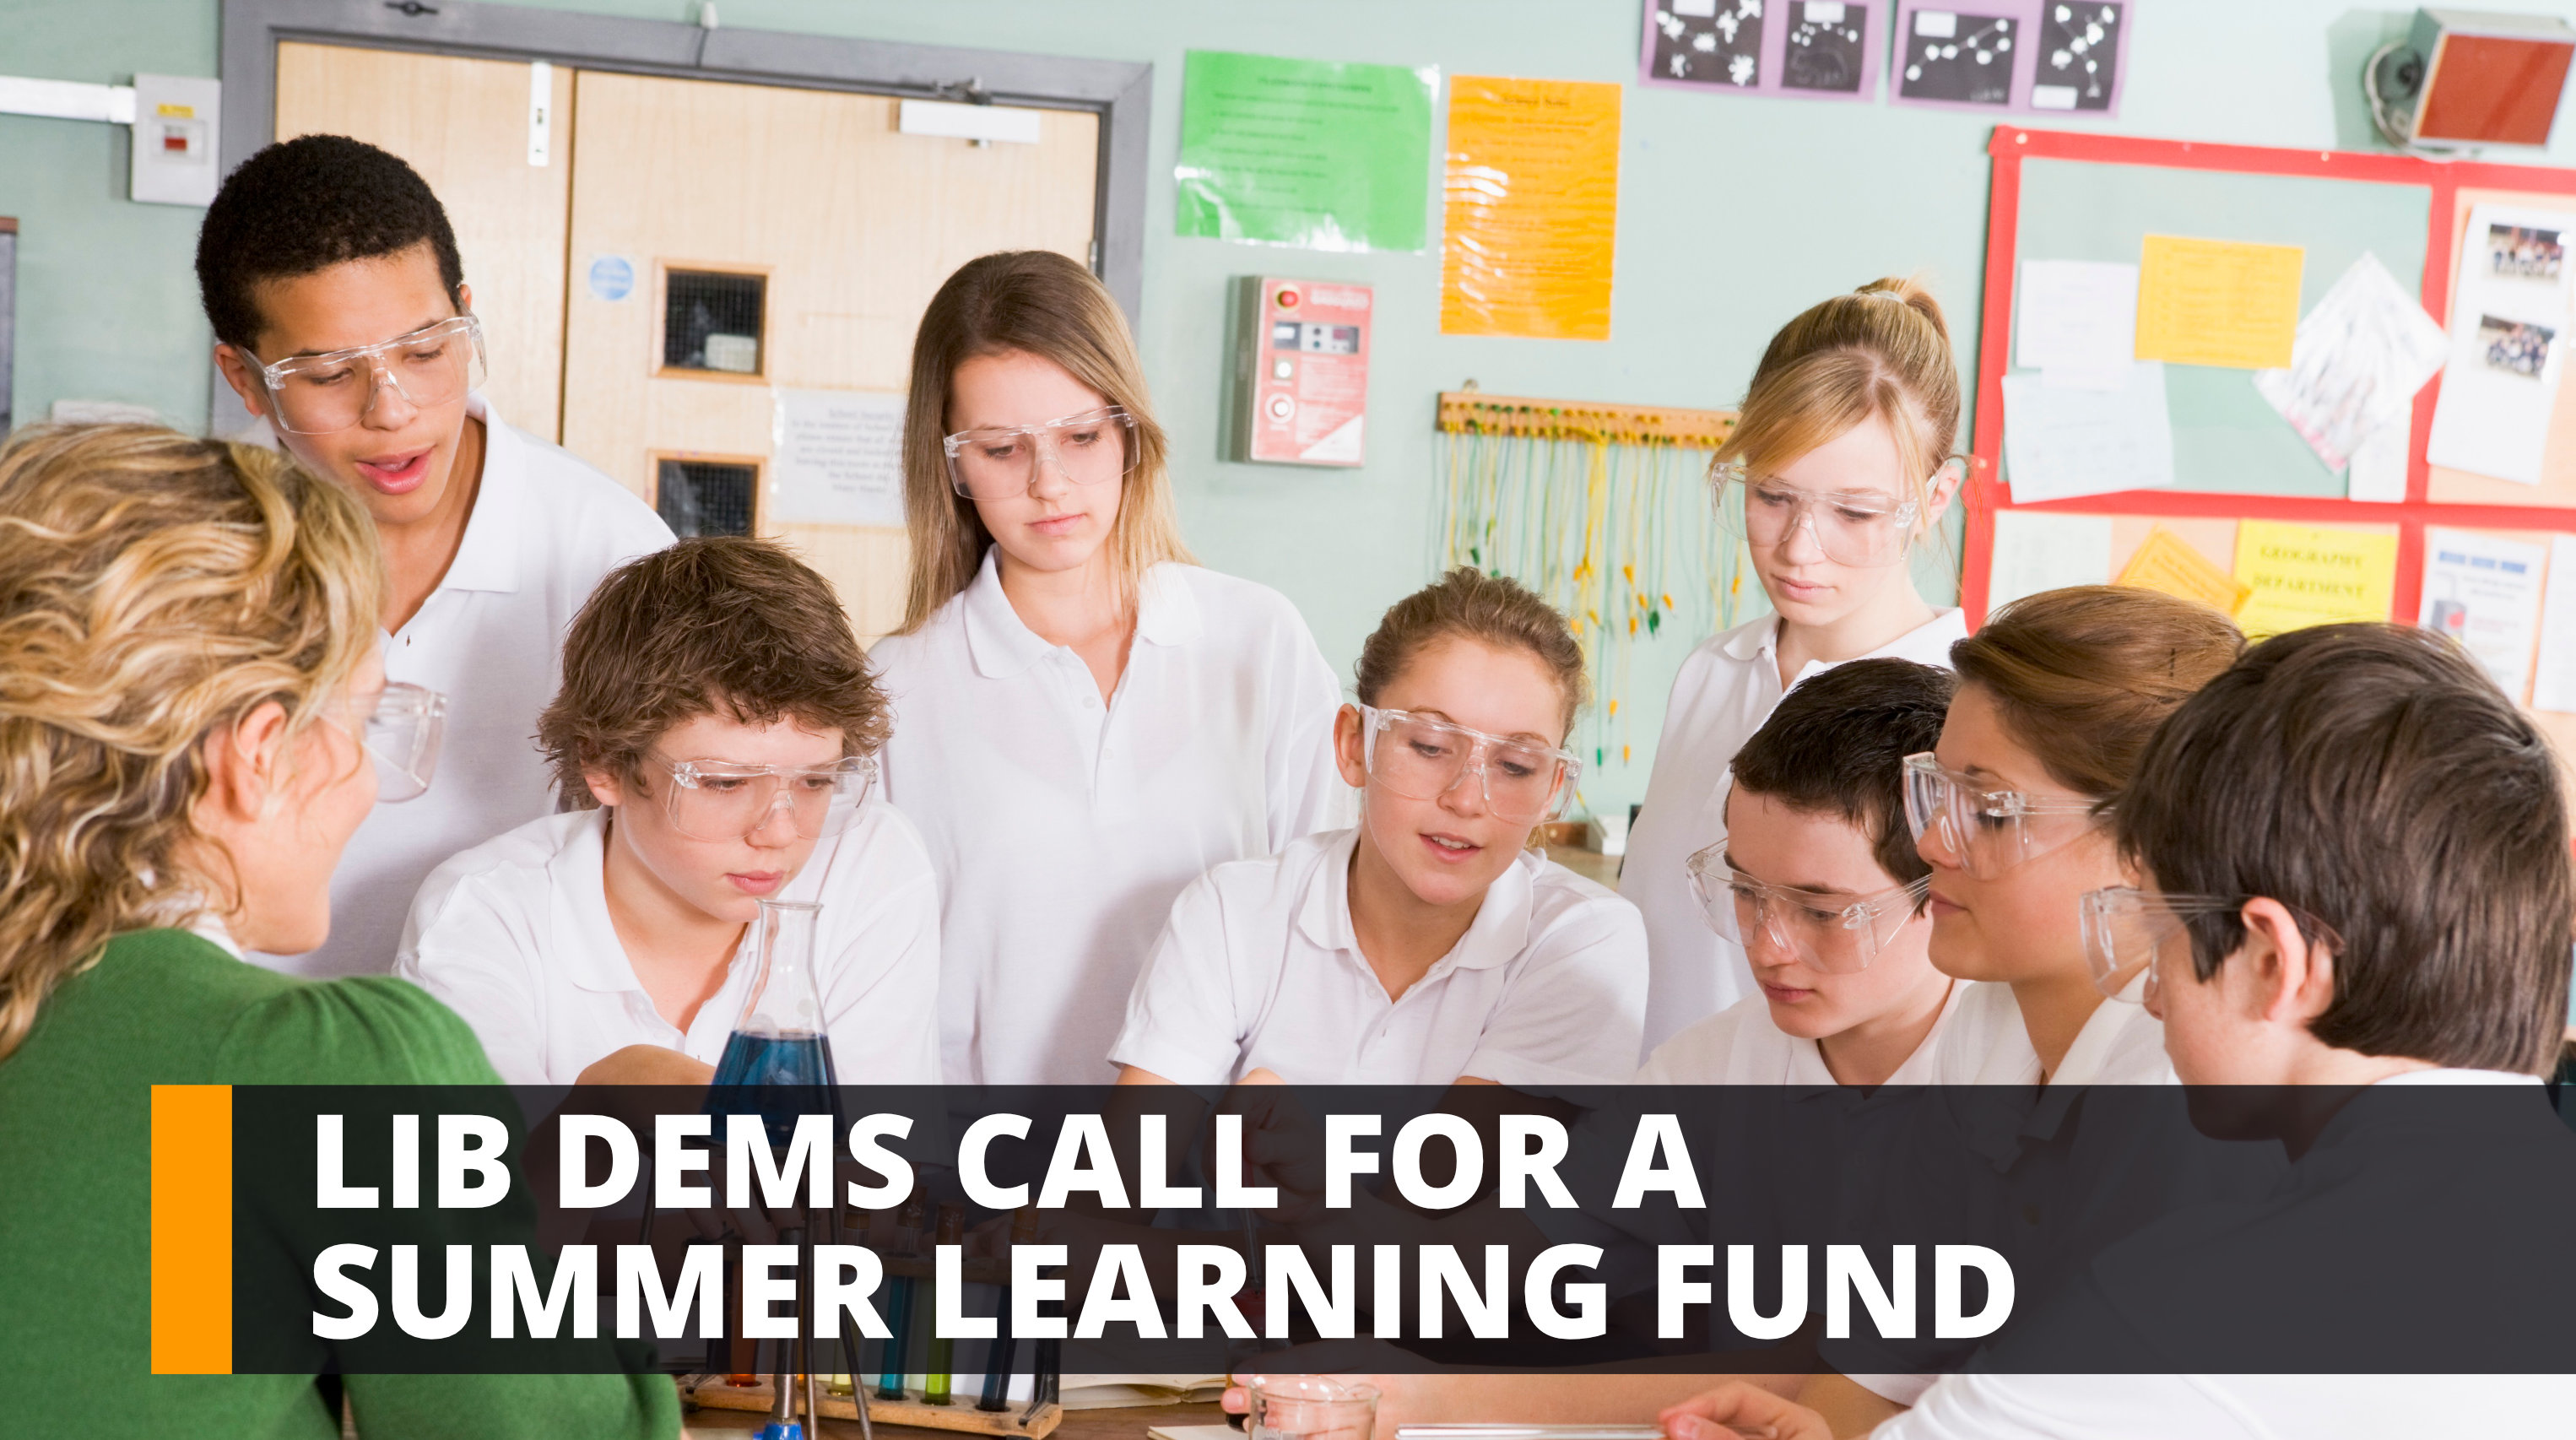 3,541 pupils across B&NES could benefit from Summer Learning Fund under Lib Dem plans